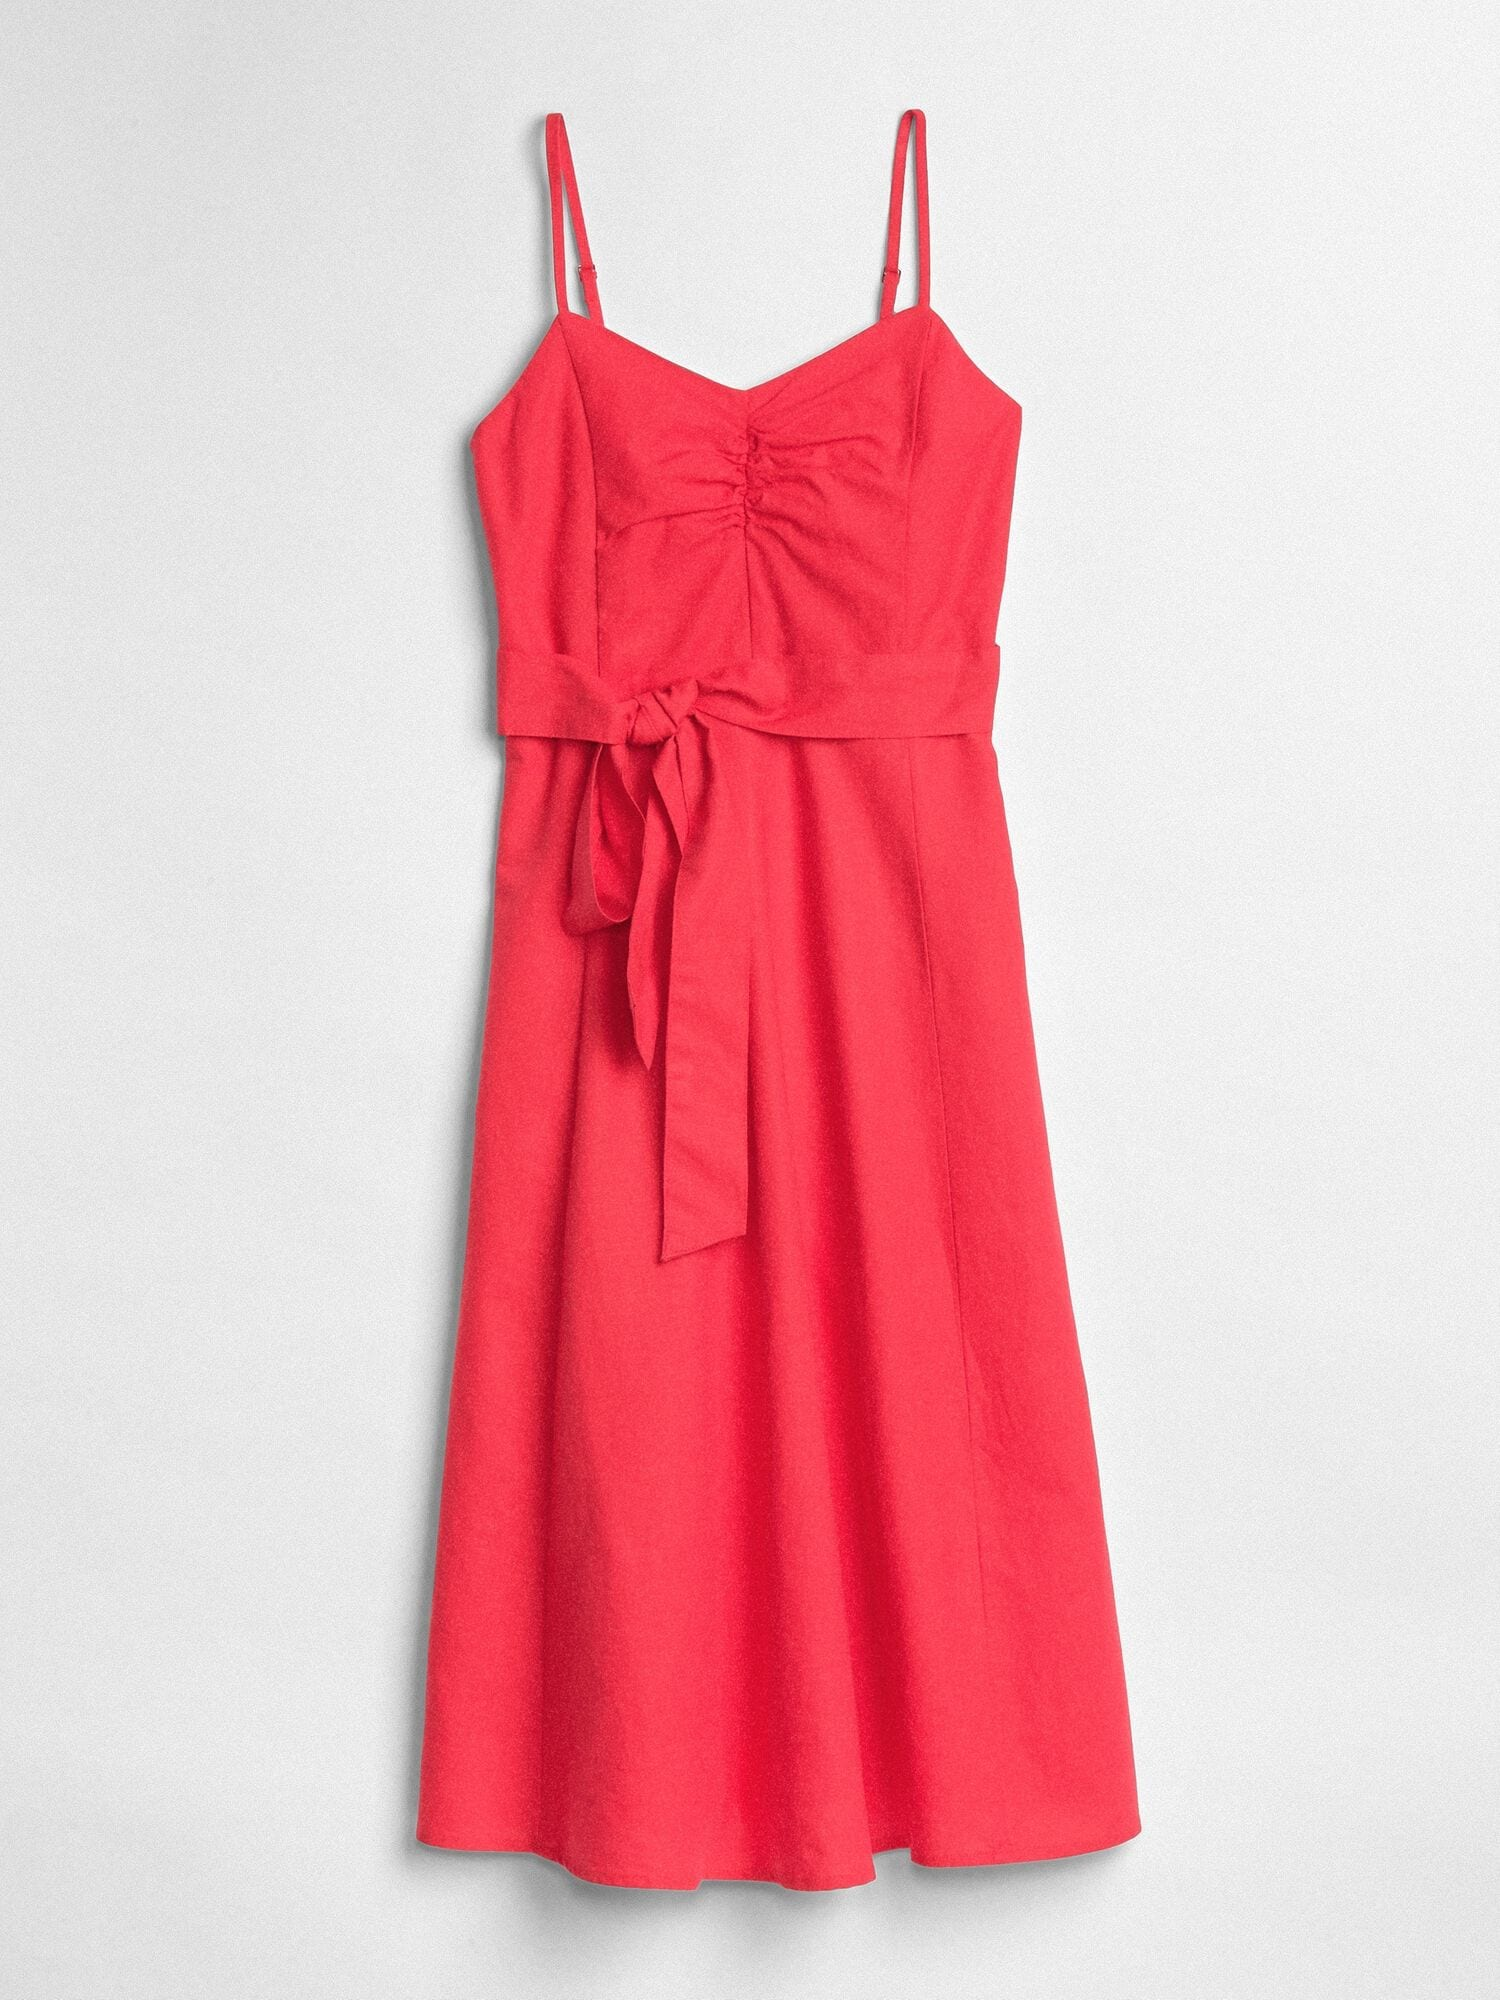 65dbedce5ec Gap Fit and Flare Cami Dress in Linen-Cotton at £34.99